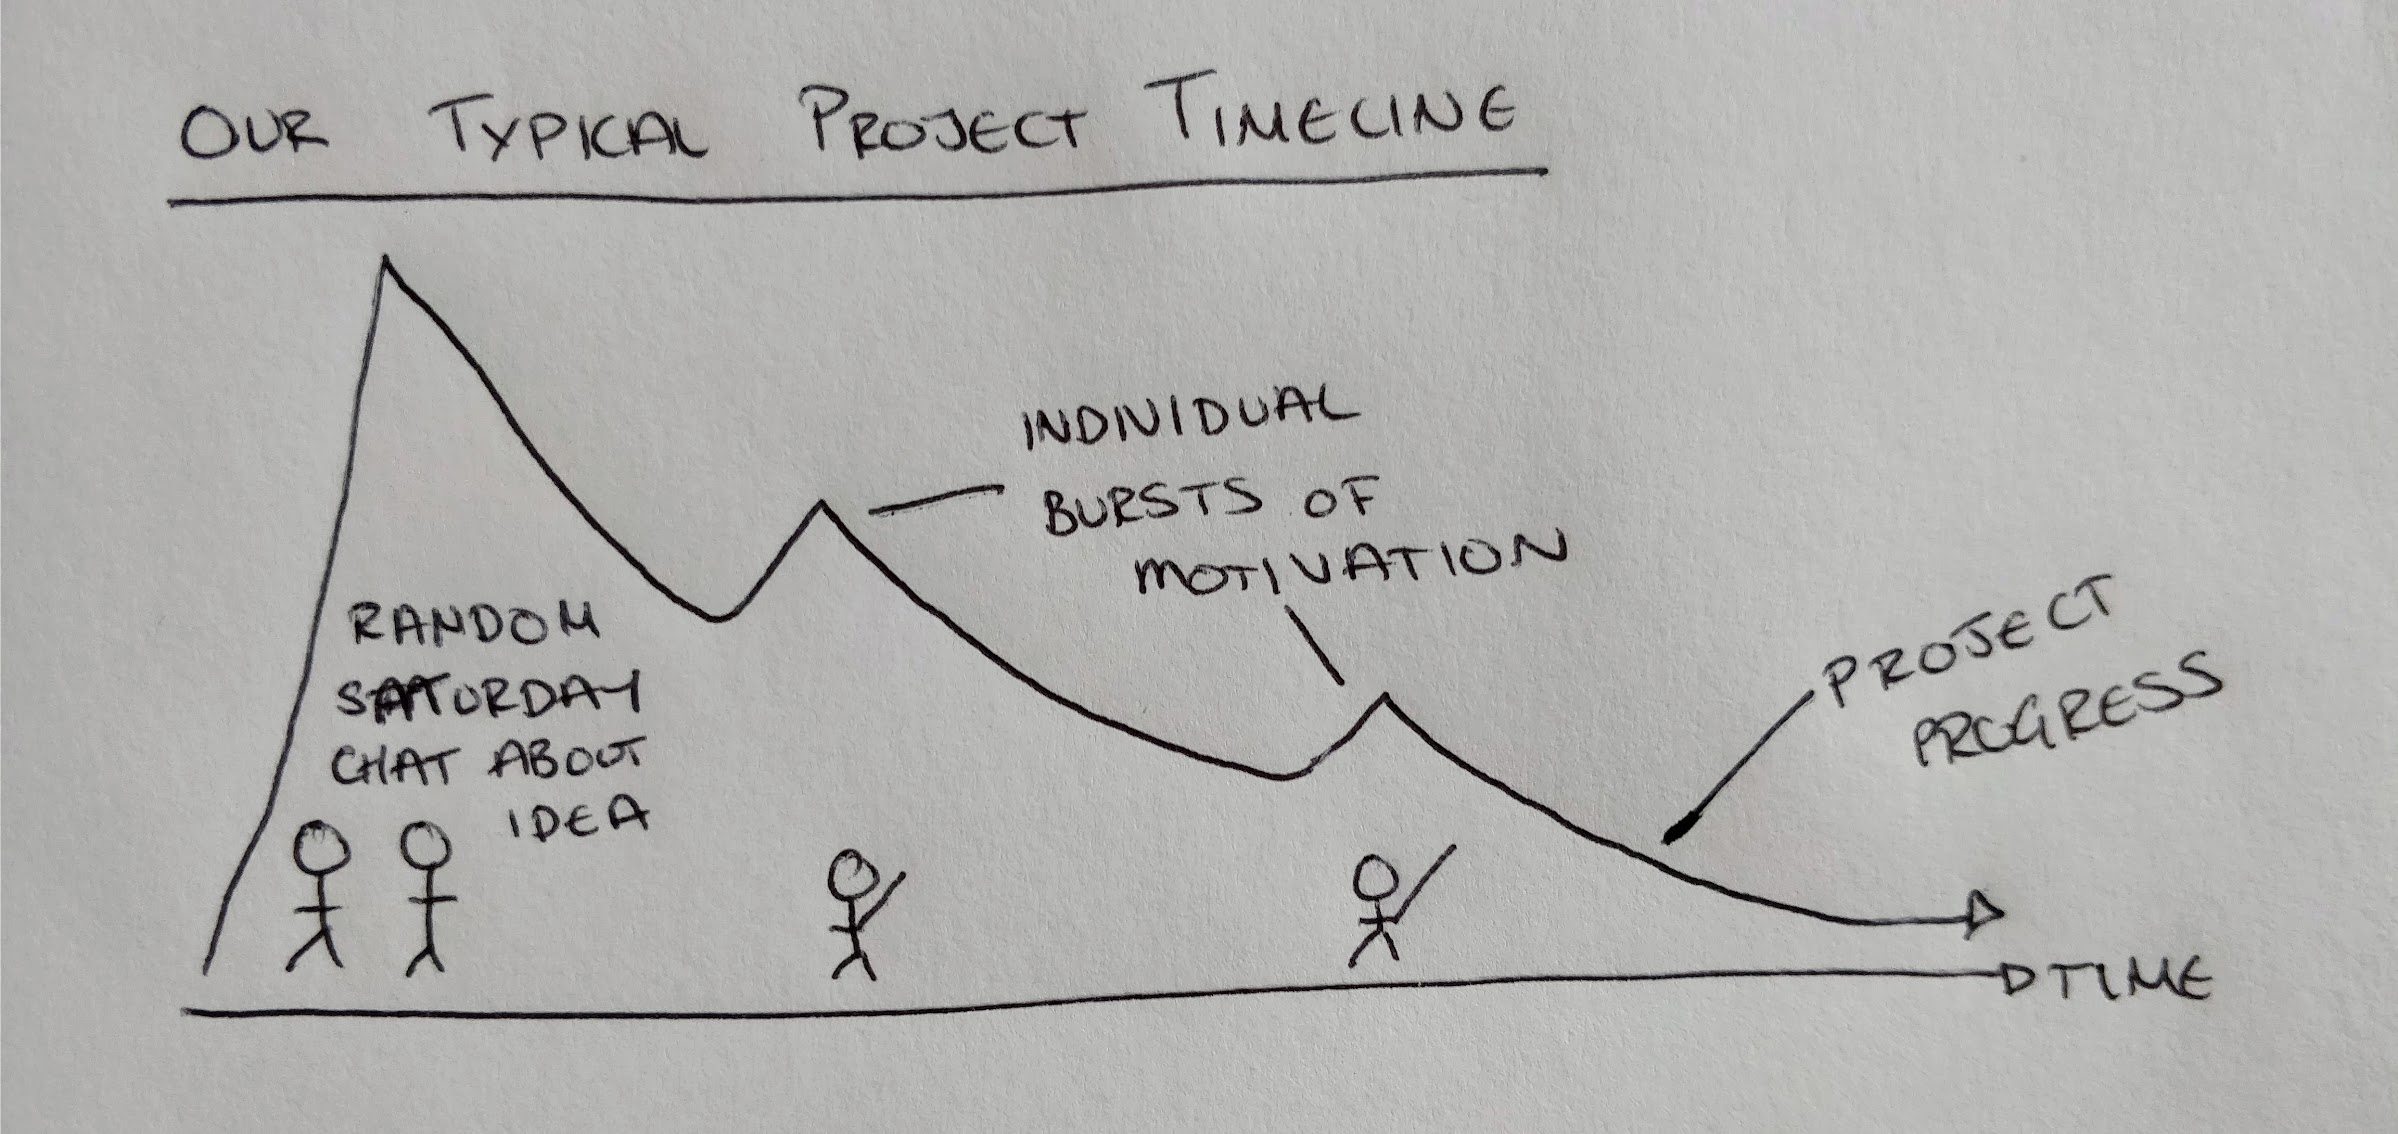 Our typical project timeline